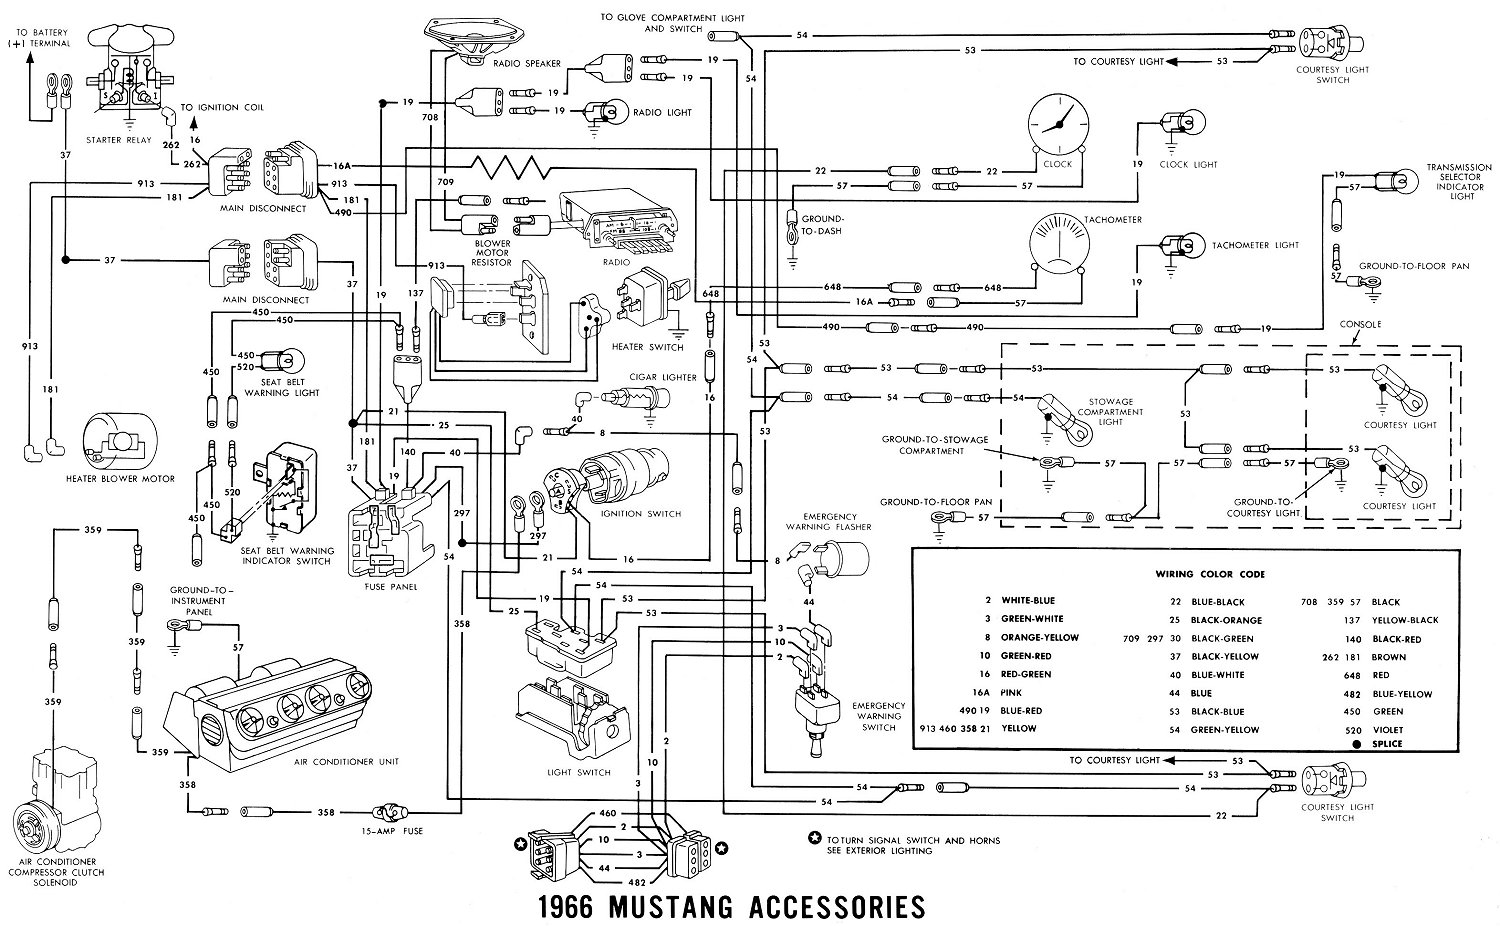 2001 Mustang Wiring Harness Diagram Real Ford 1966 Detailed Schematics Rh Lelandlutheran Com Radio 2002